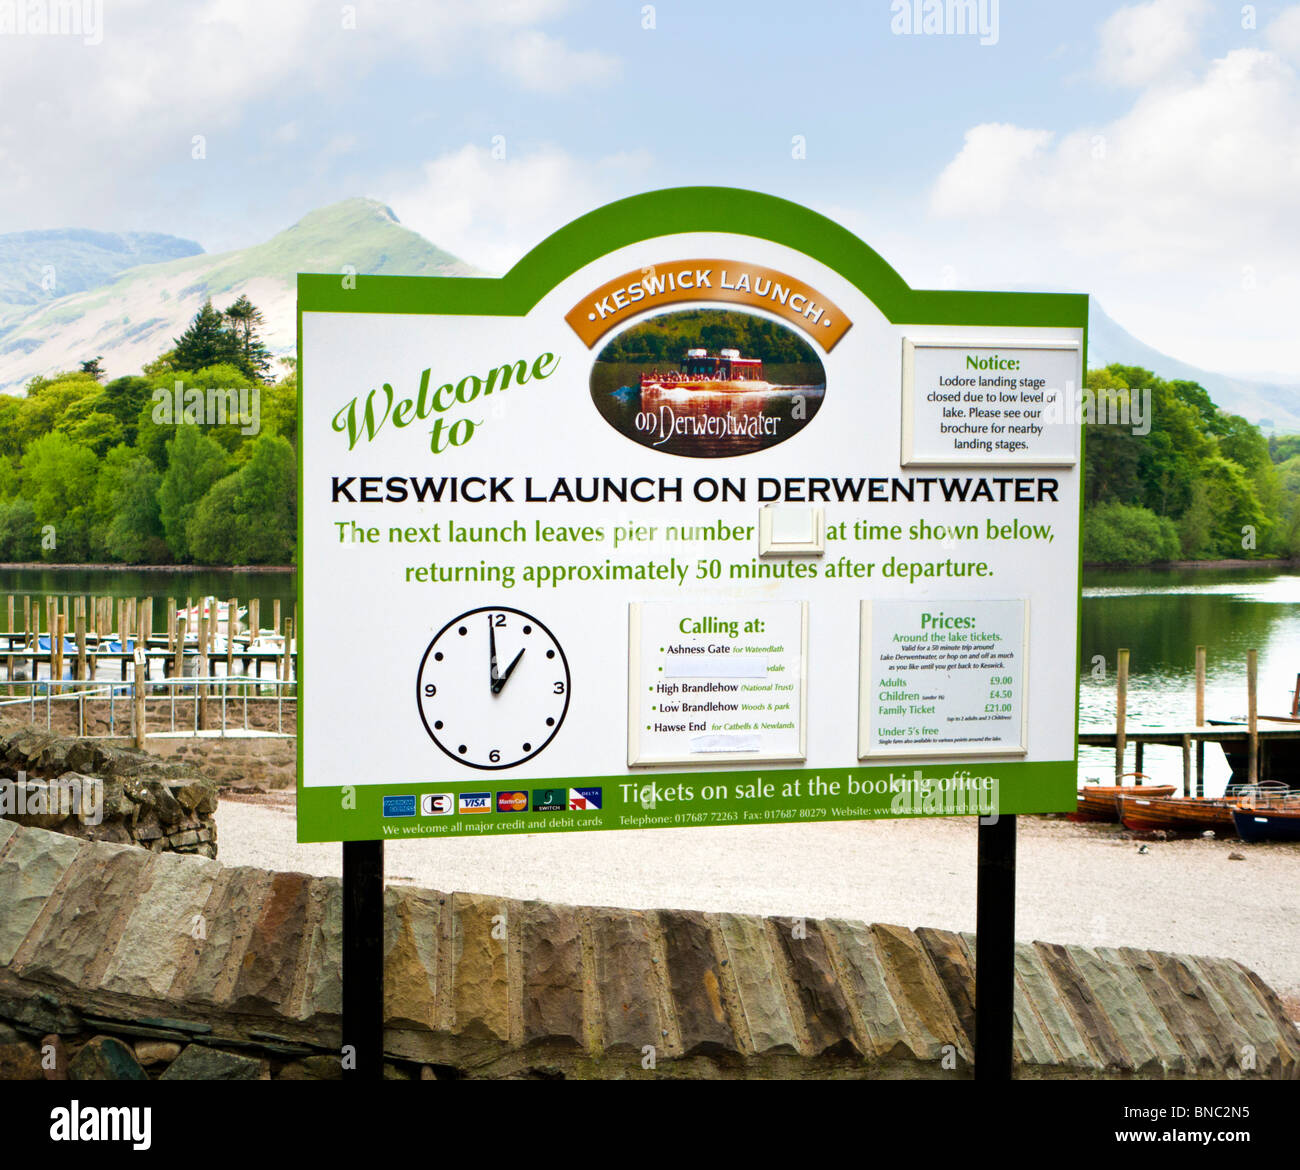 Keswick Launch information board at Derwentwater, The Lake District, Cumbria, England UK - Stock Image